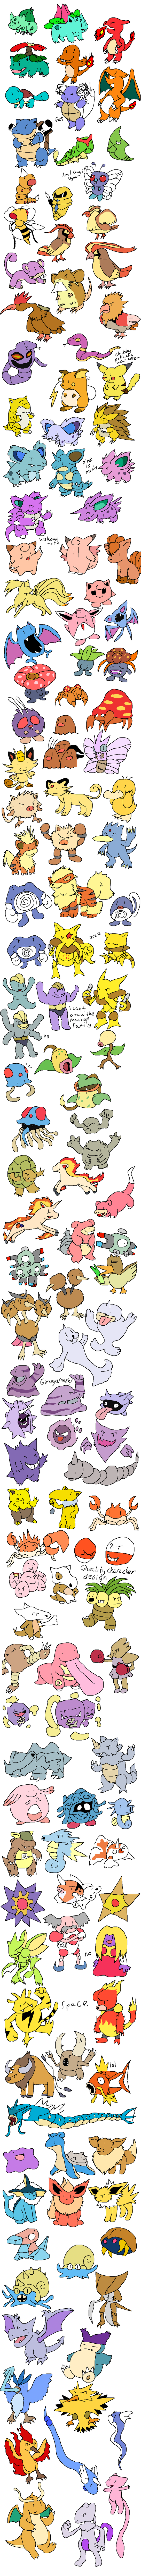 Gotta Draw Em All - Gen 1 by Inika-Xeathis